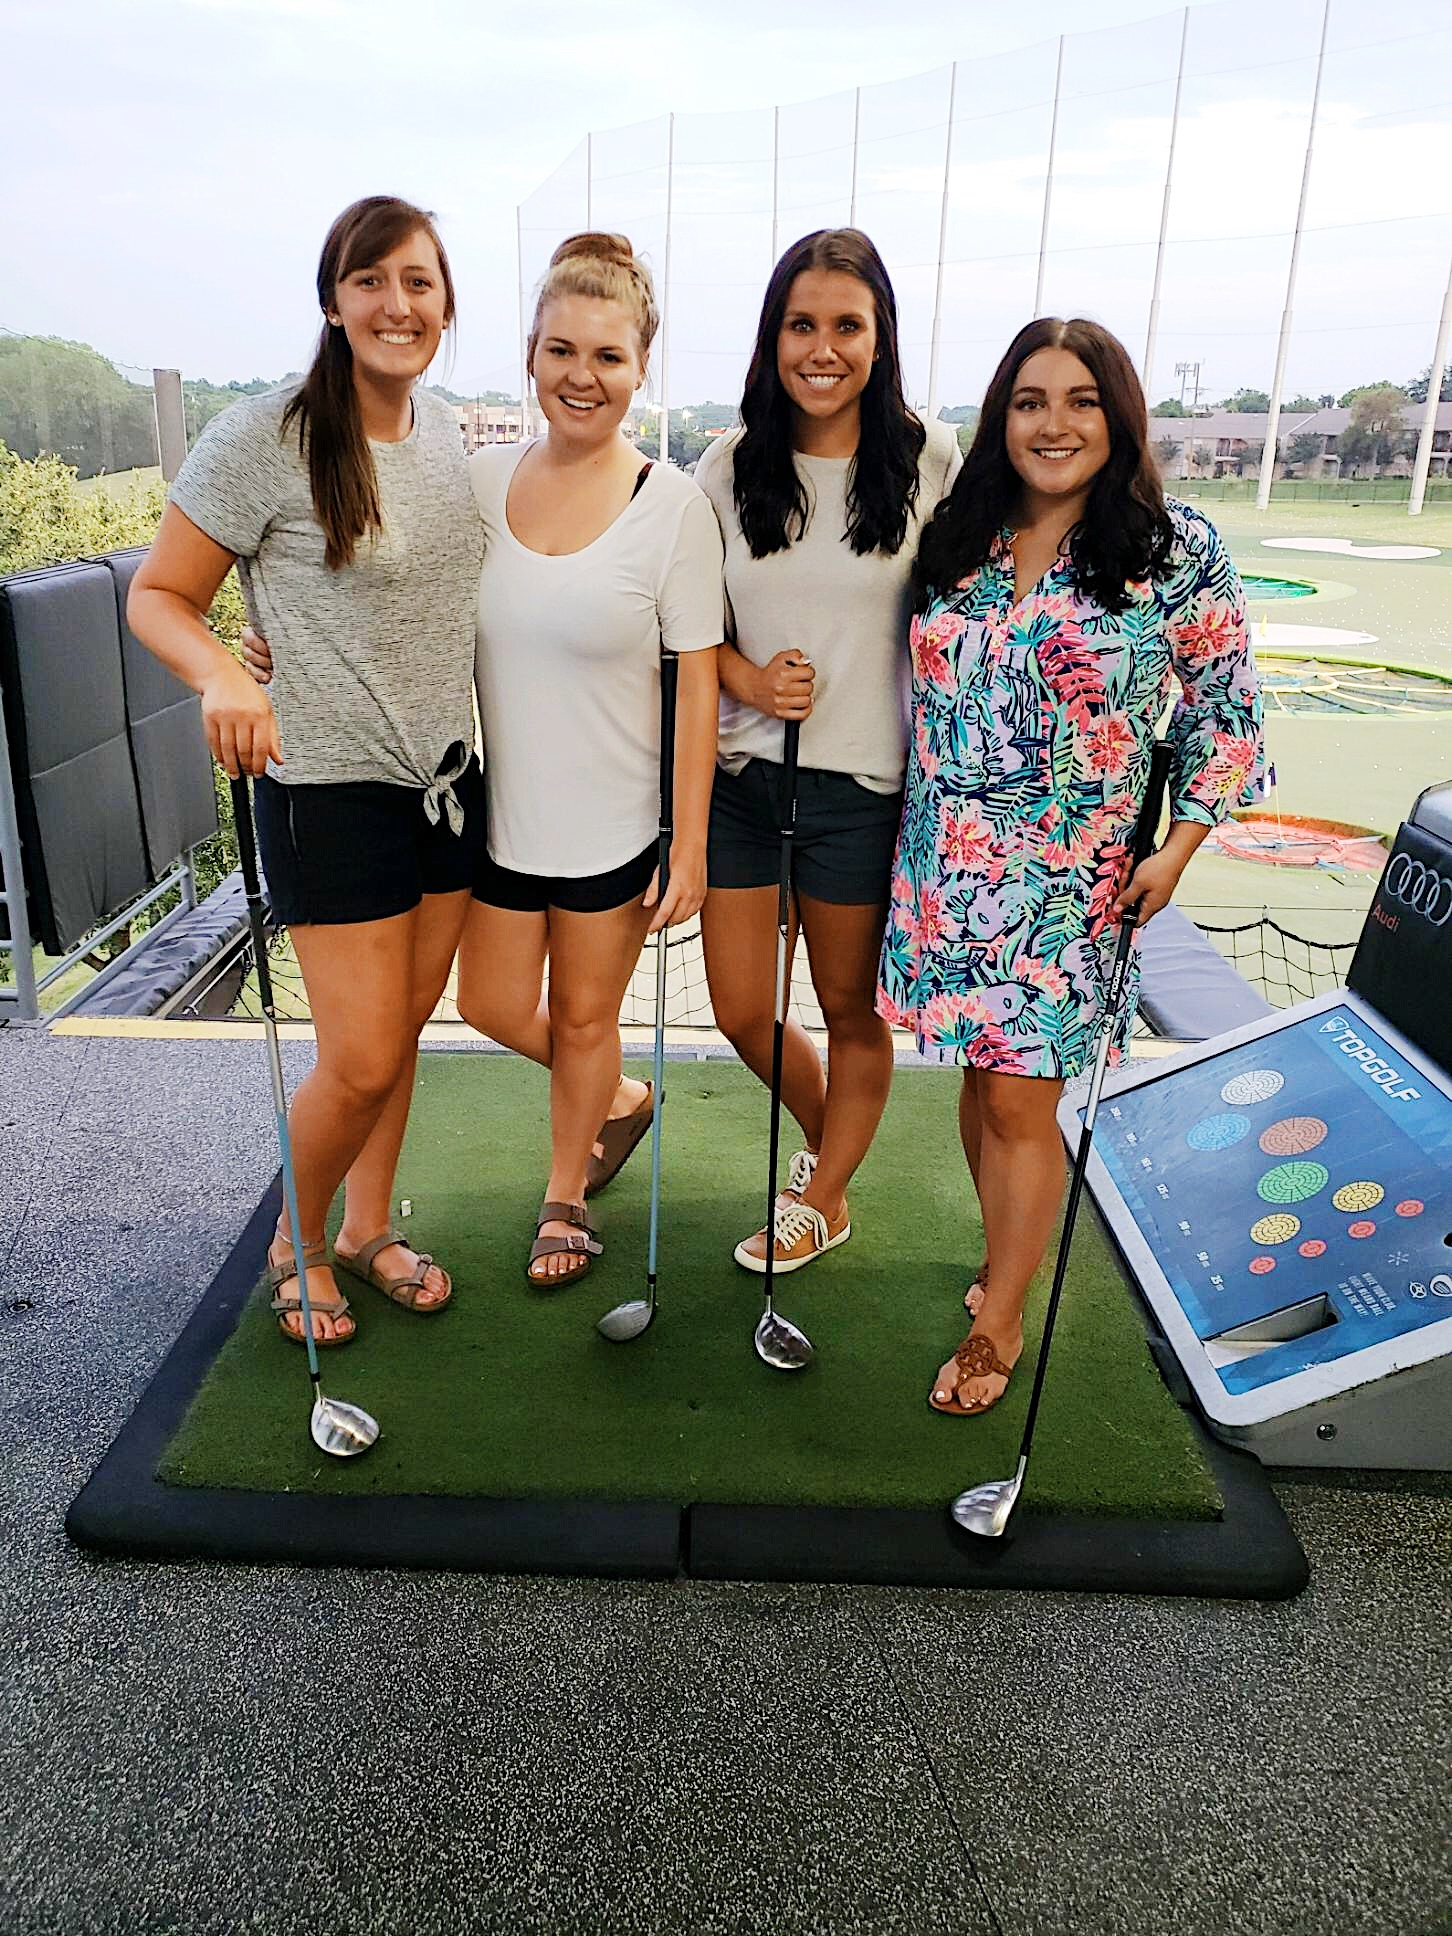 The Best Things To Do In Dallas You'll Want to Do featured by popular San Diego travel blogger, The Brunette & The Beach: Dallas' Top Golf